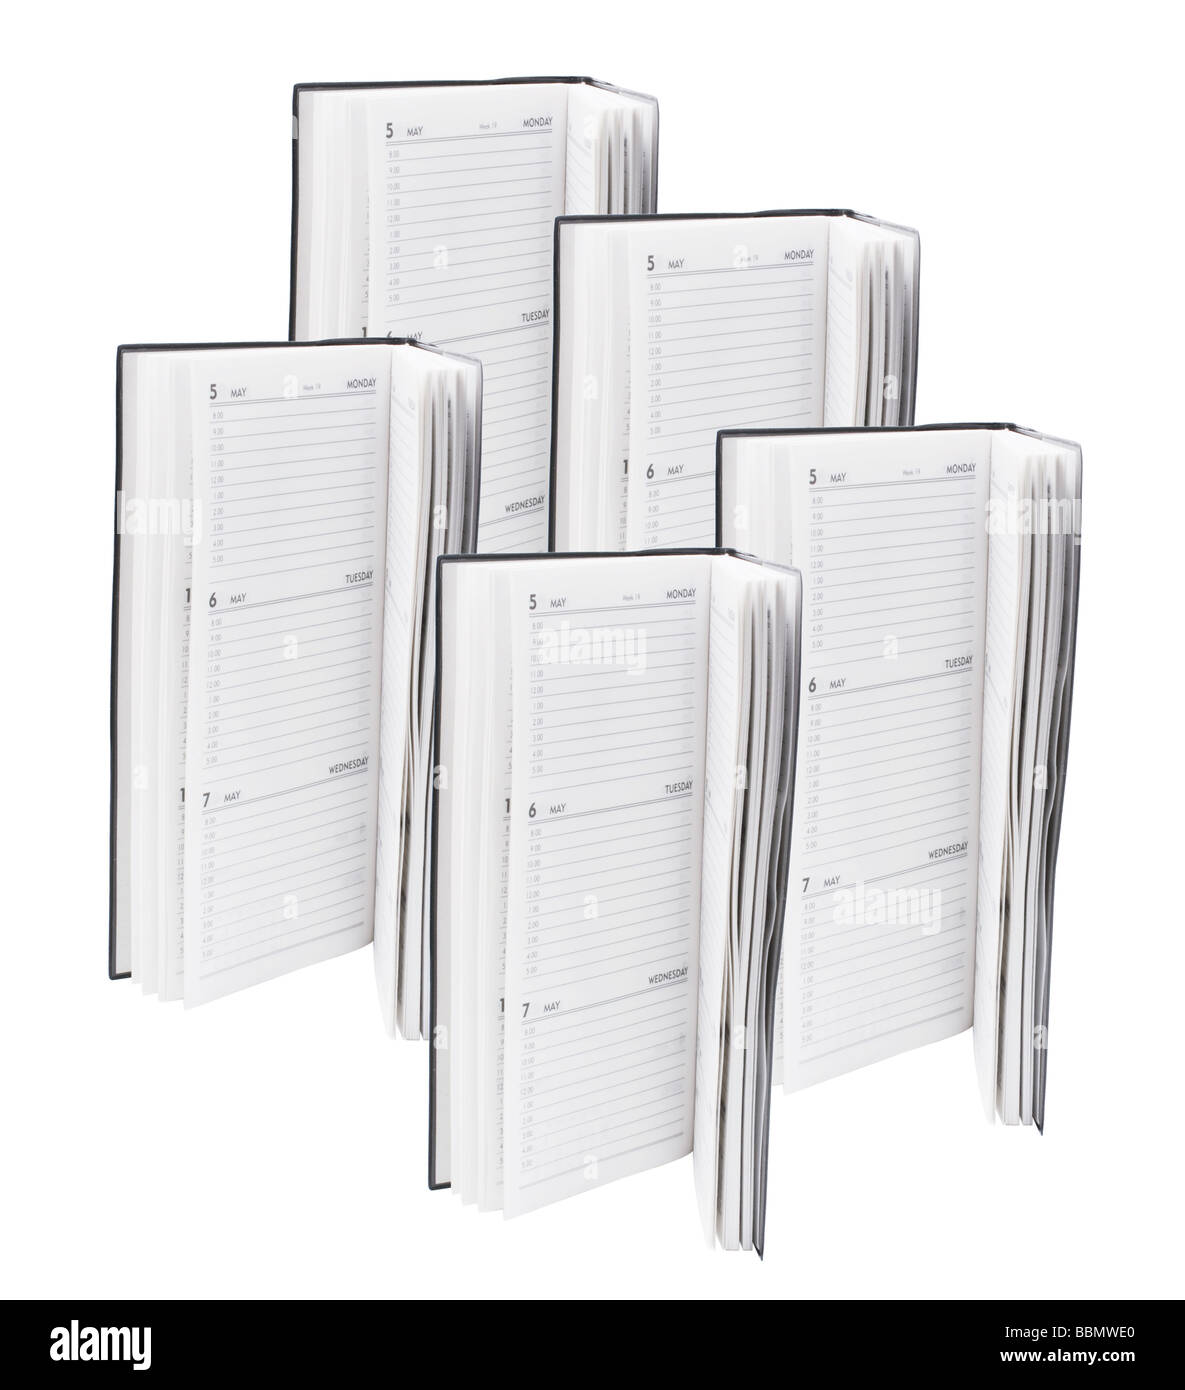 Pocket Planners - Stock Image